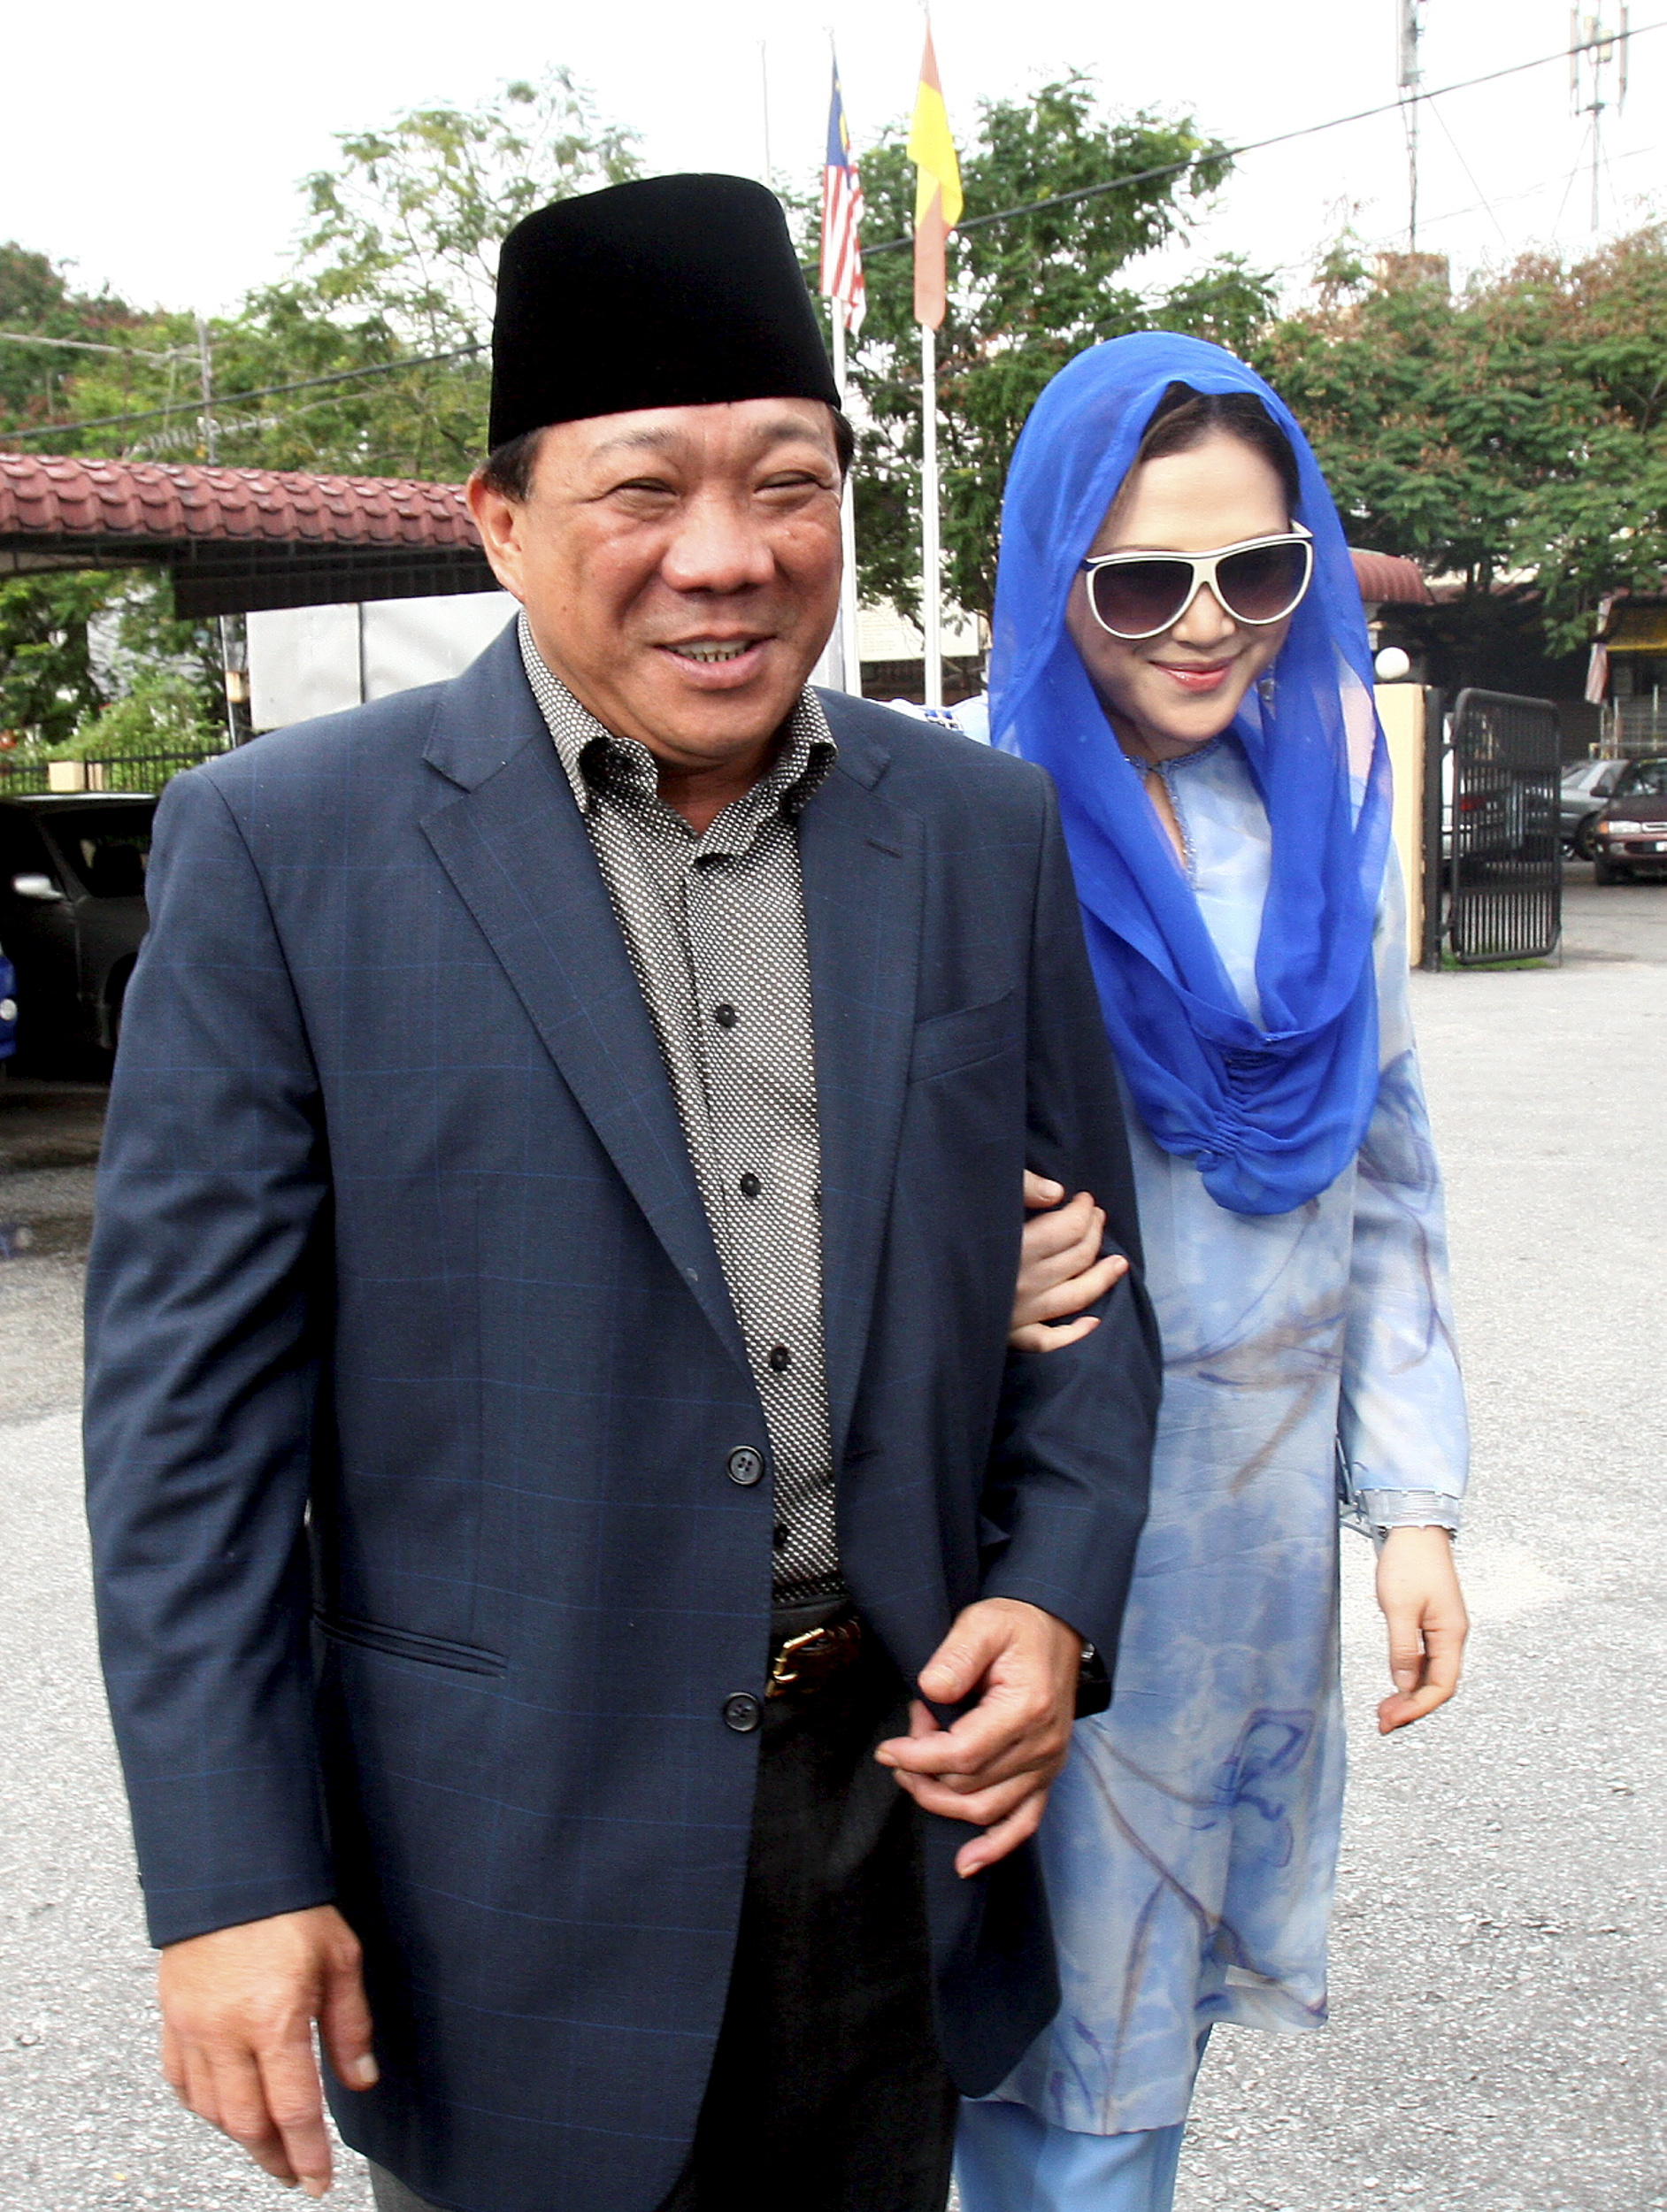 Malaysian lawmaker Bung Mokhtar Radin and his second wife Zizie Ezette arriving at a Shari'a court in Kuala Lumpur on May 19, 2010